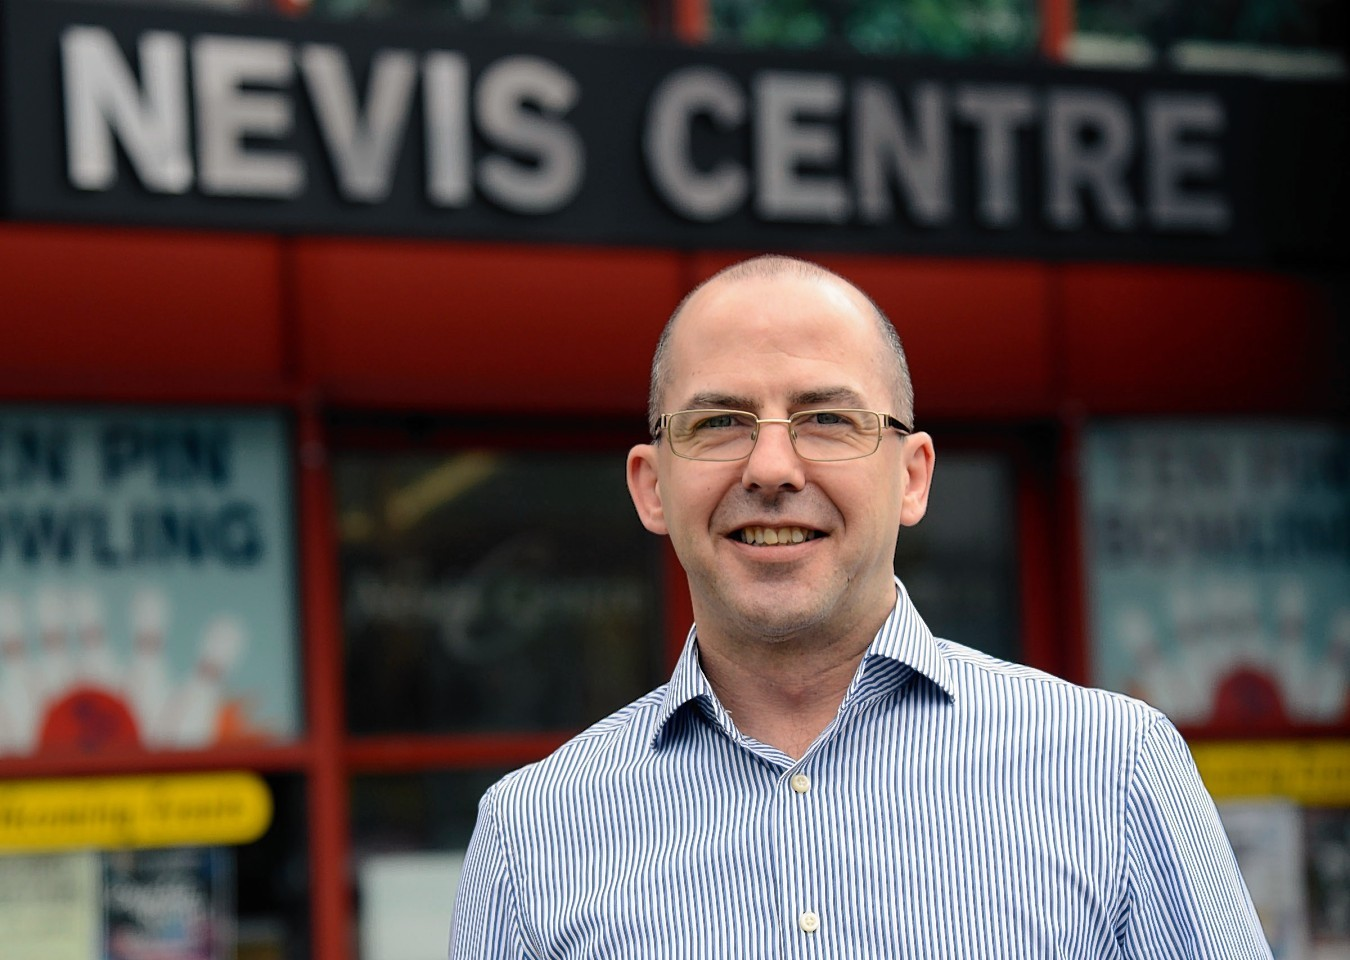 Kenny McLaughlin, manager of the Nevis Centre in Fort William which faces a huge cut in its council grant.